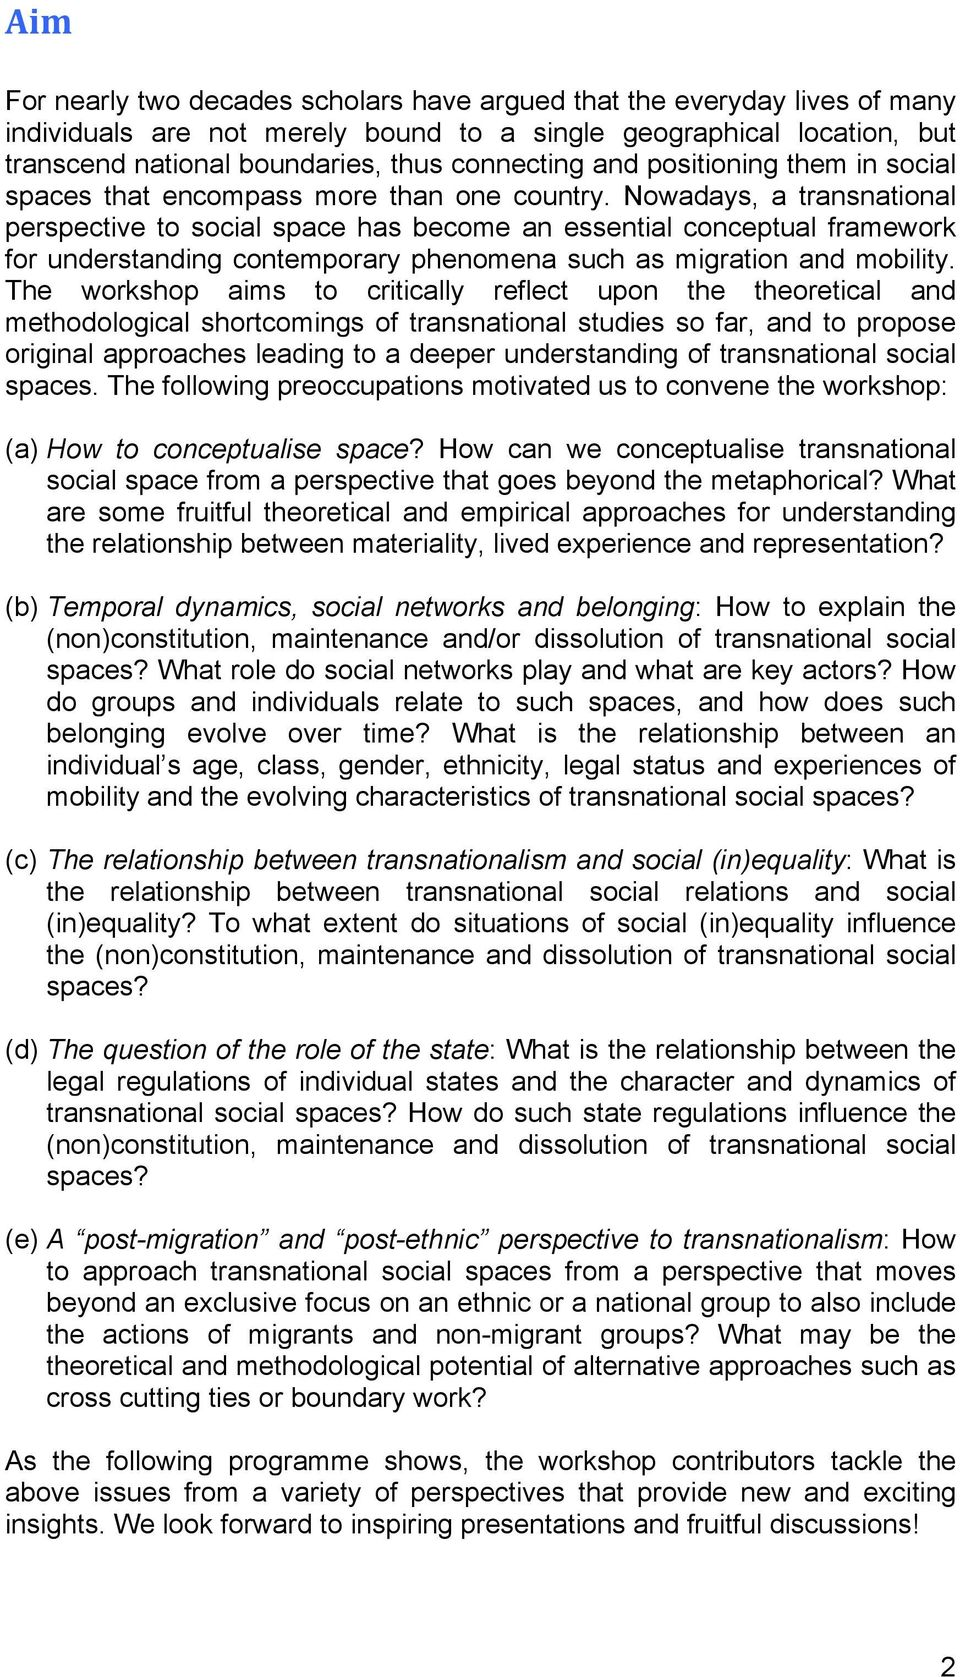 Nowadays, a transnational perspective to social space has become an essential conceptual framework for understanding contemporary phenomena such as migration and mobility.